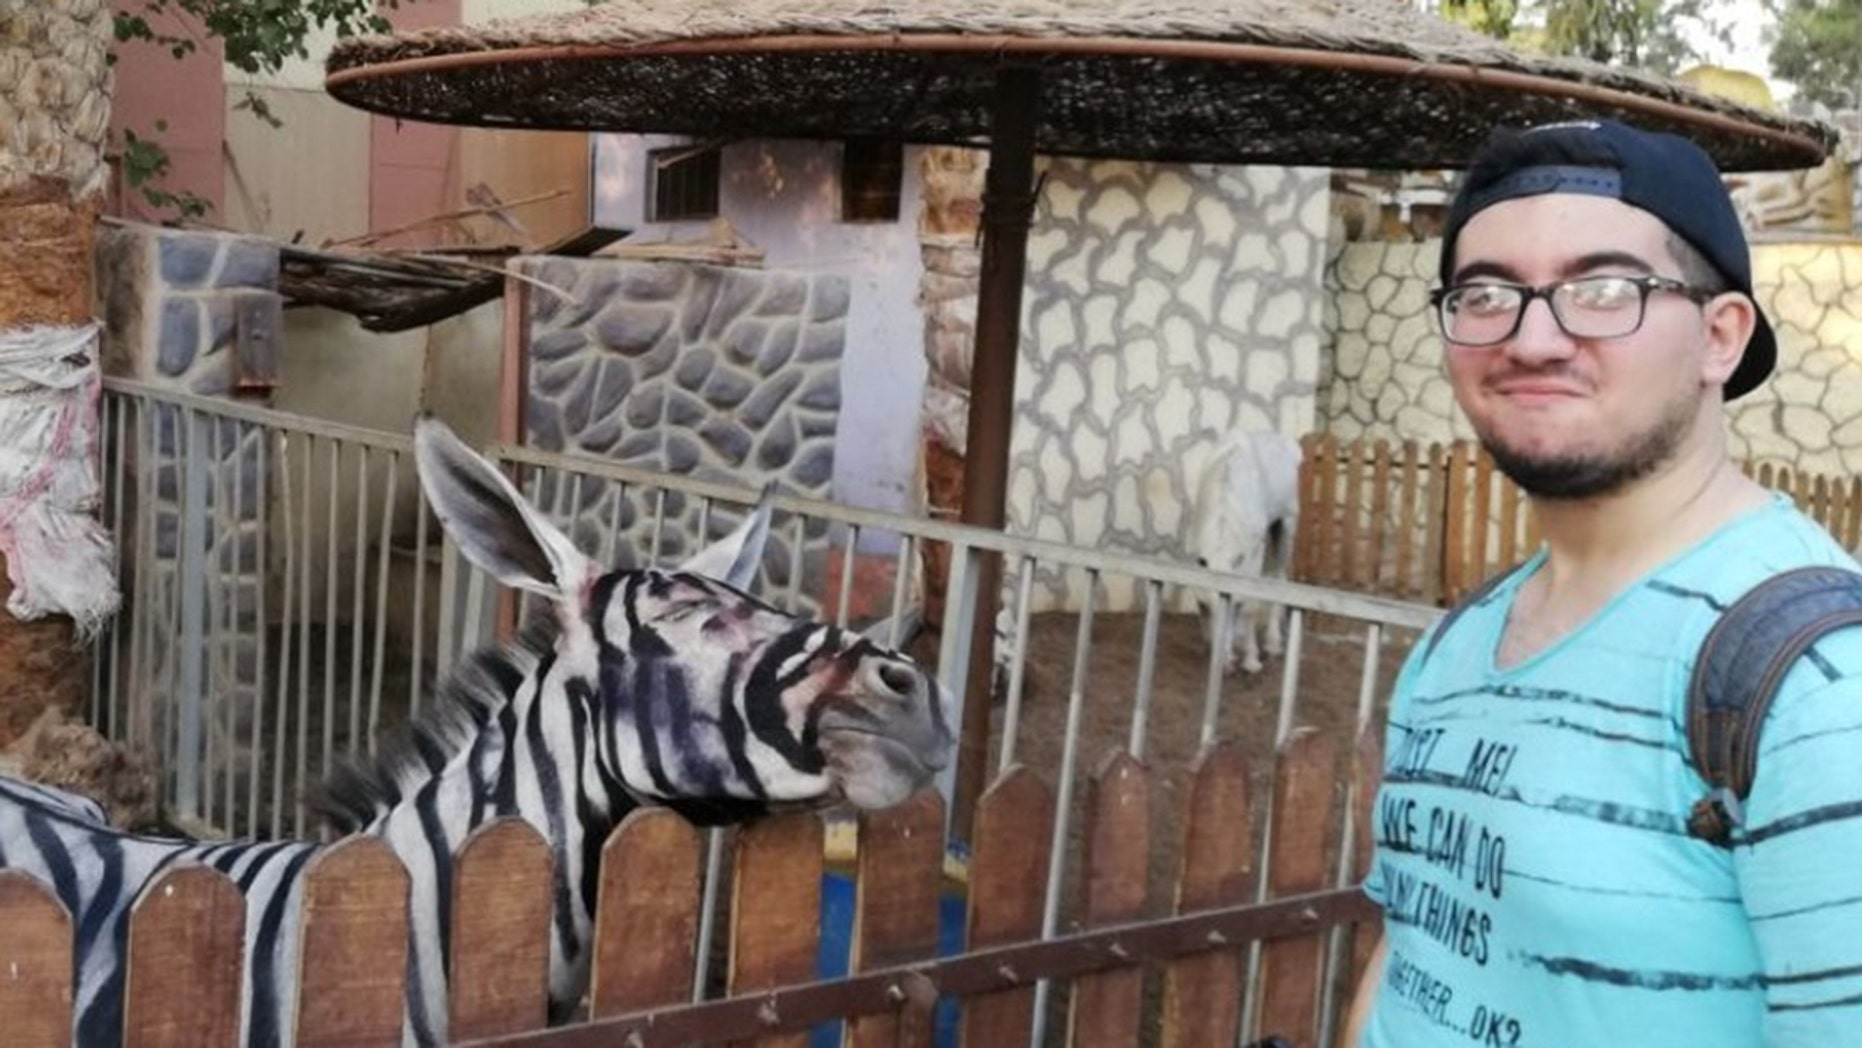 Mahmoud Sarhan visited a Cairo zoo and saw a zebra that did not look quite right.